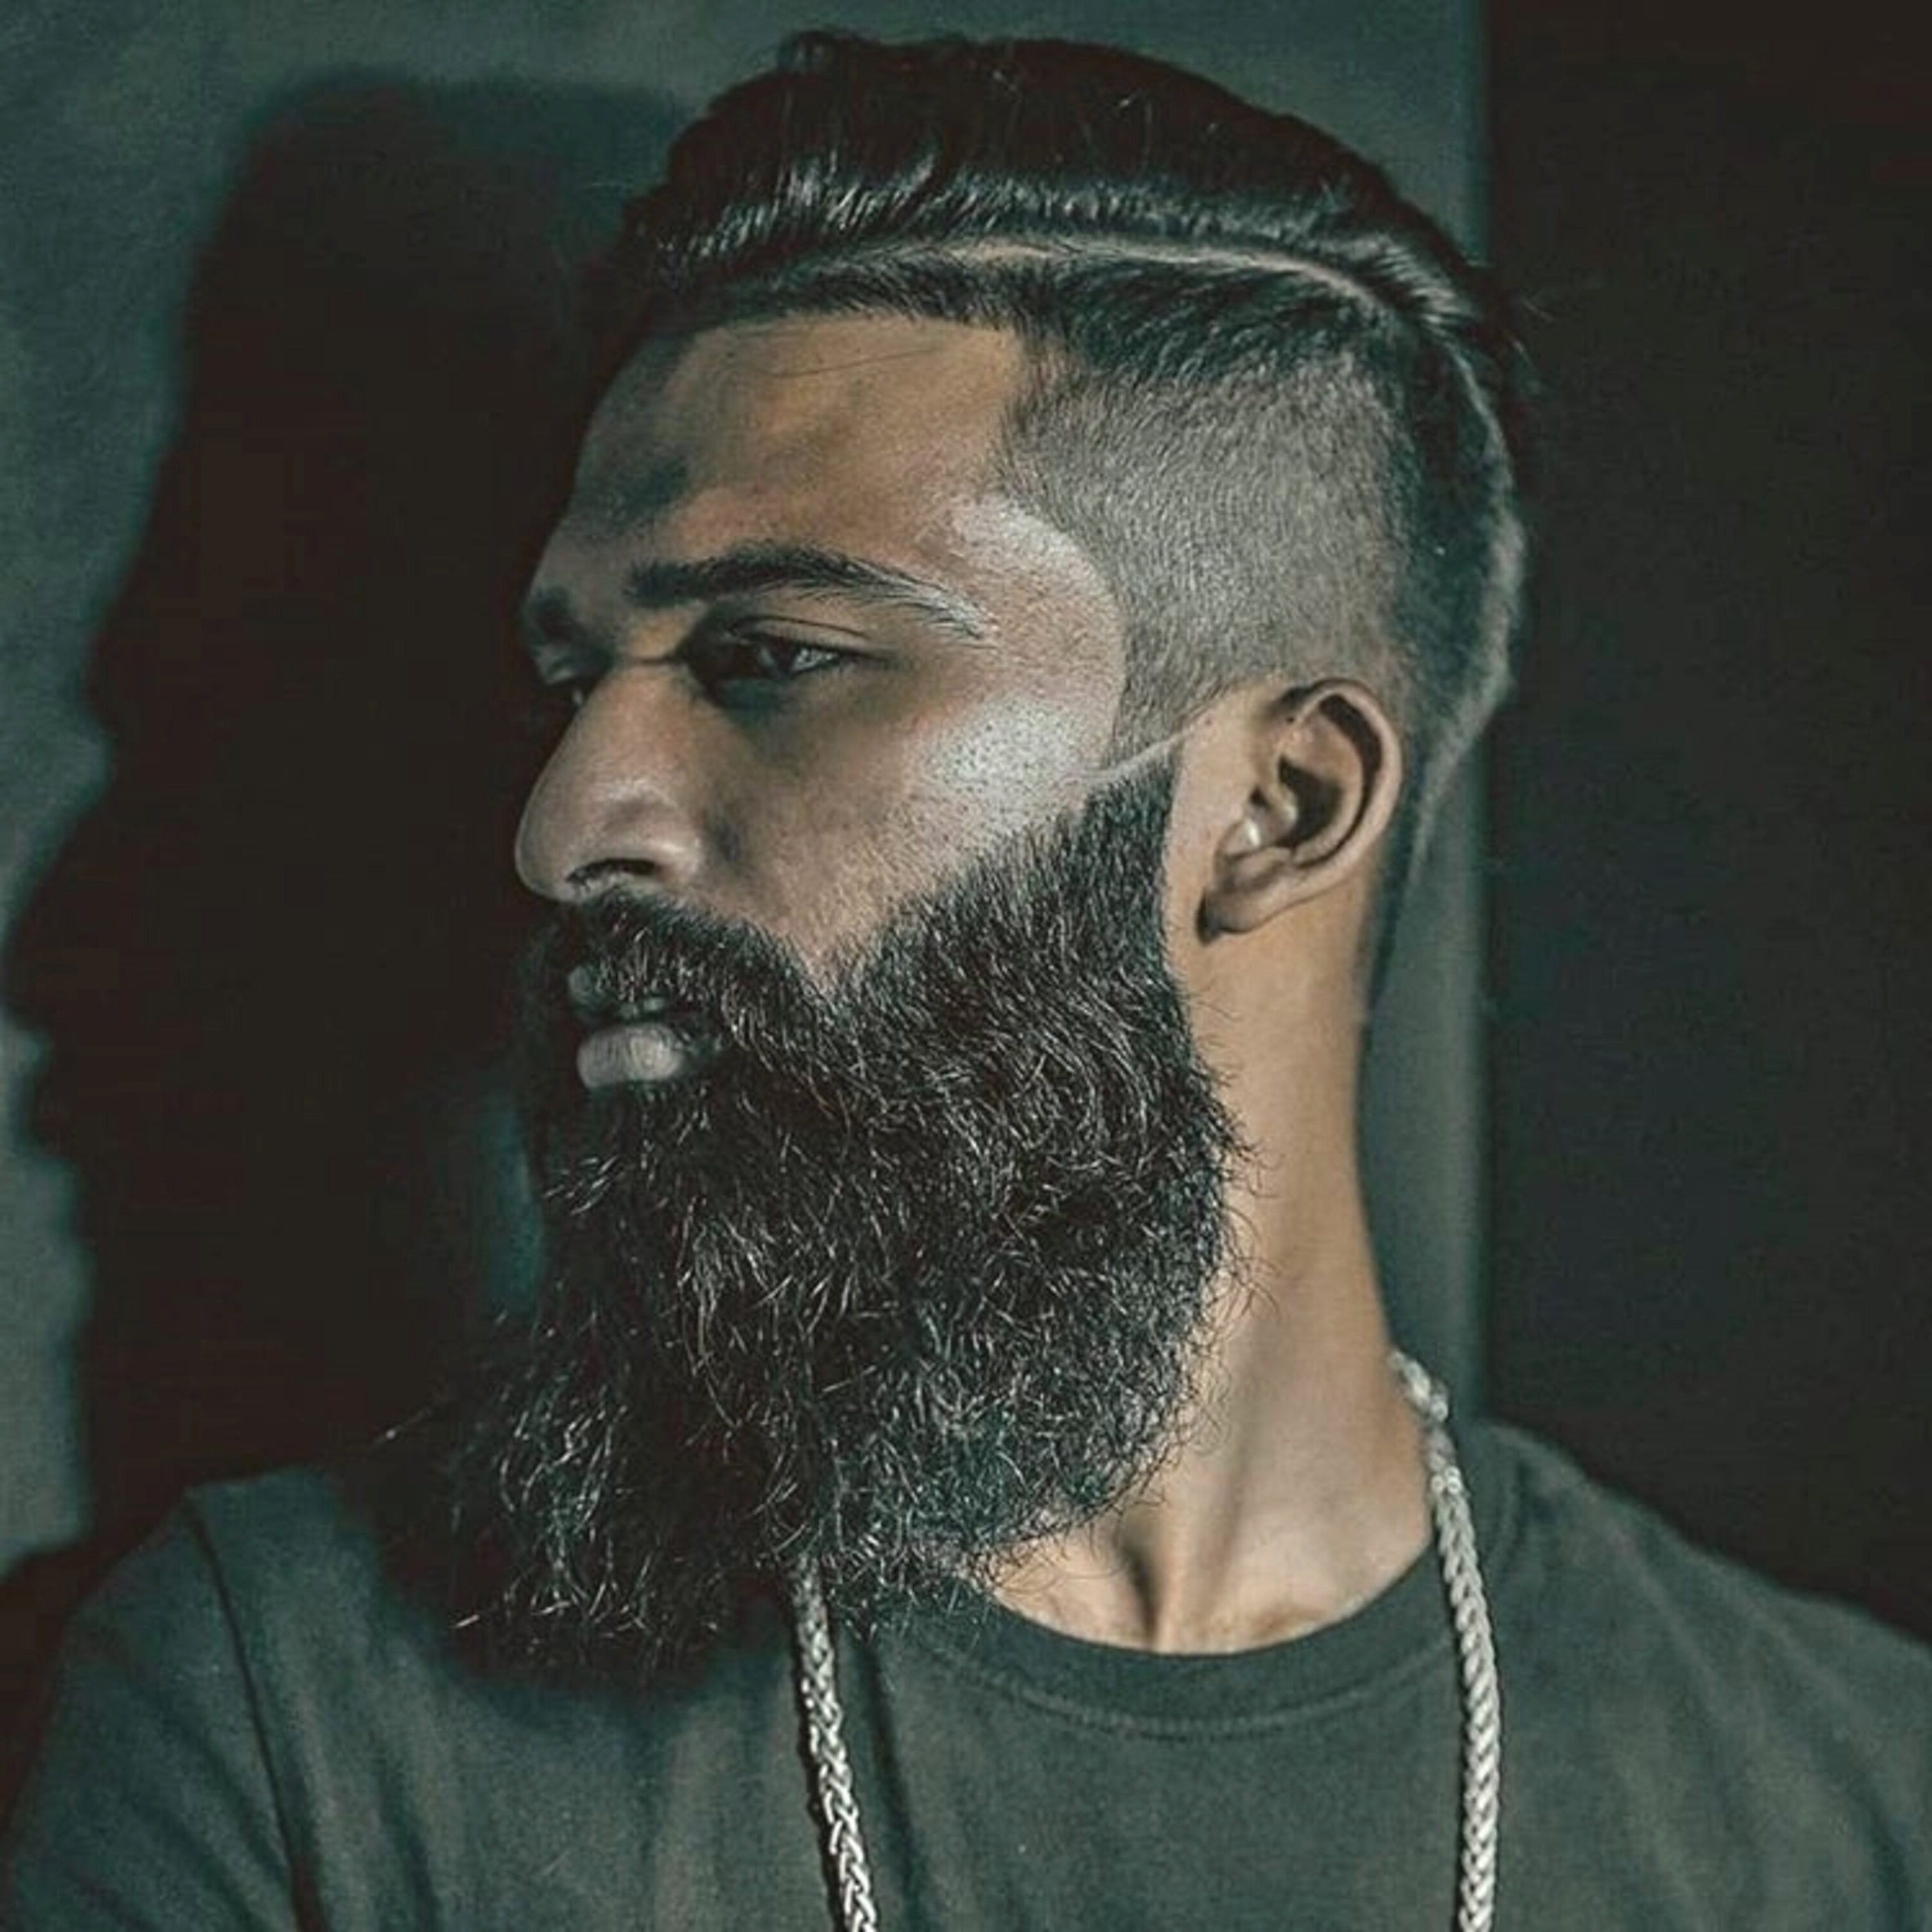 A full beard with short sides for men.